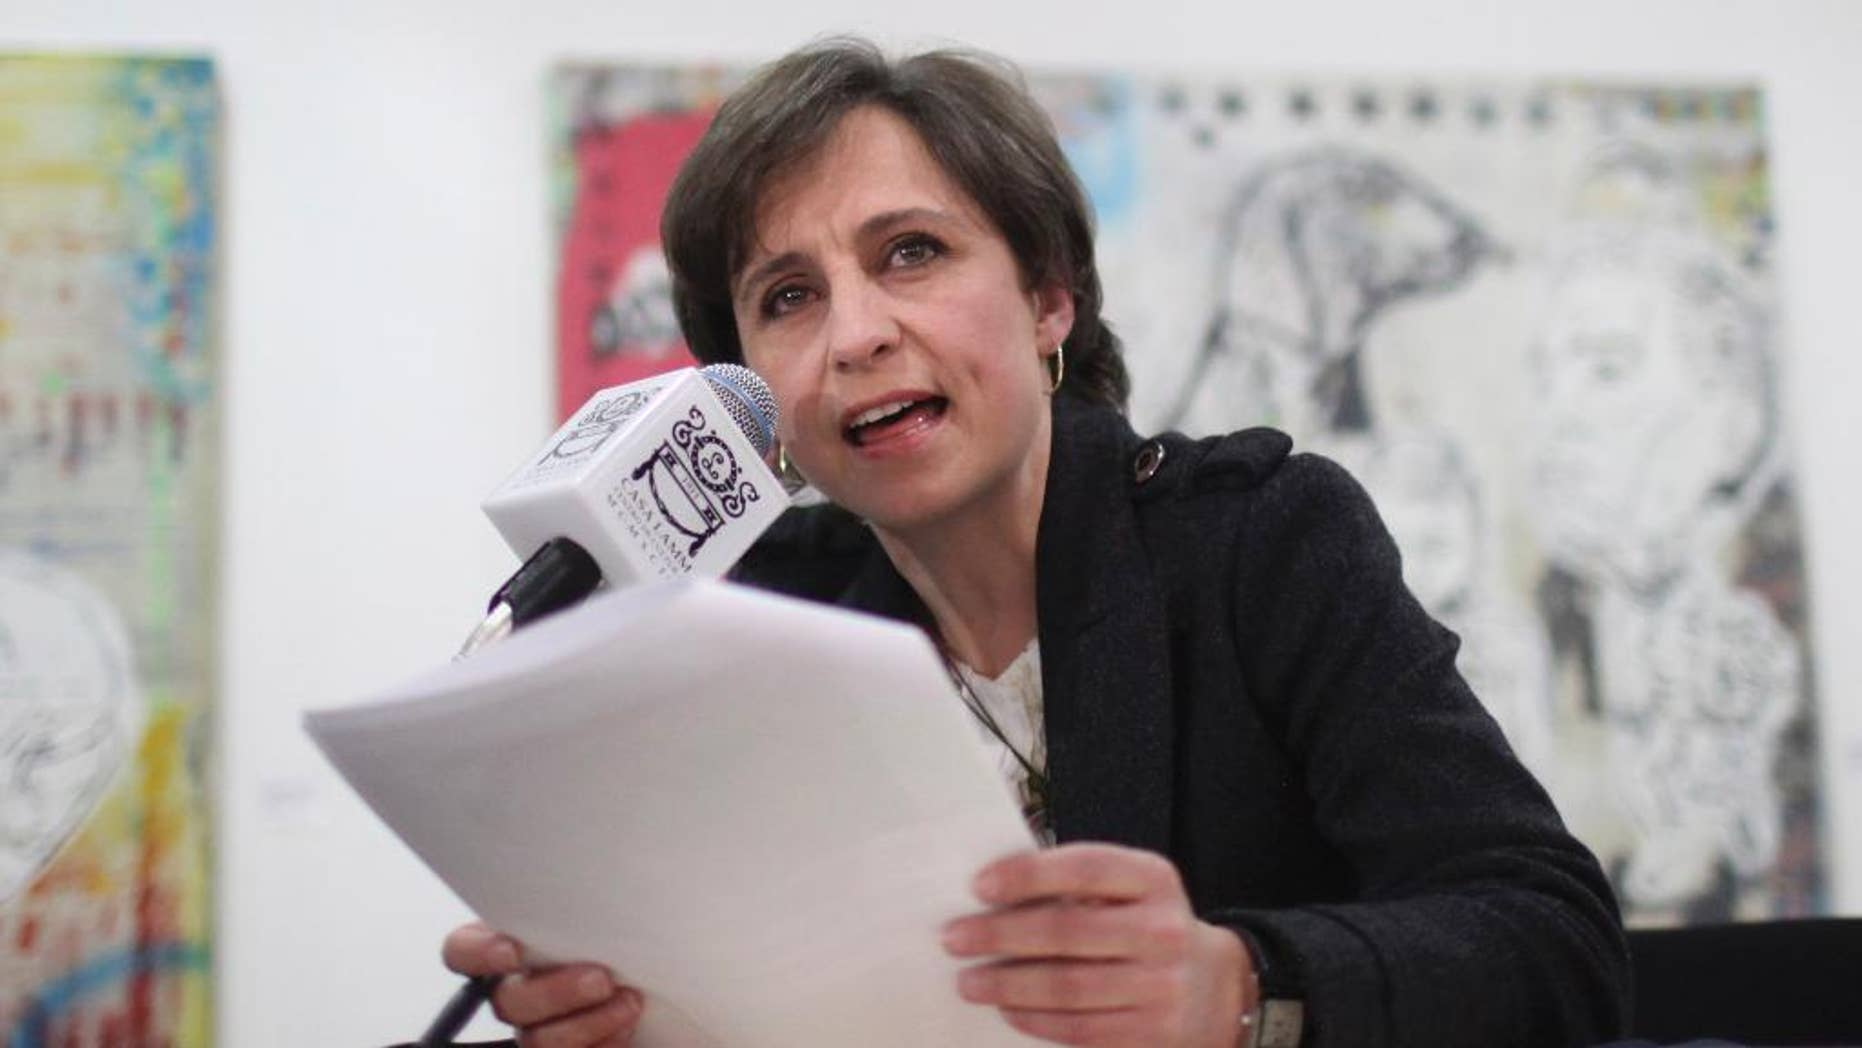 FILE - In this Feb. 9, 2011 file photo, Mexican journalist Carmen Aristegui gives a press conference in Mexico City. MVS Radio says Aristegui was fired on Sunday, March 15, 2015 for challenging the firing of reporters who had misused the company's name by linking it to a website meant to collect leaks of government information. But defenders of Aristegui note that the firing comes a few months after the same reporters had embarrassed President Enrique Pena Nieto by revealing his wife had a house financed by a frequent government contractor. (AP Photo/Alexandre Meneghini, File)